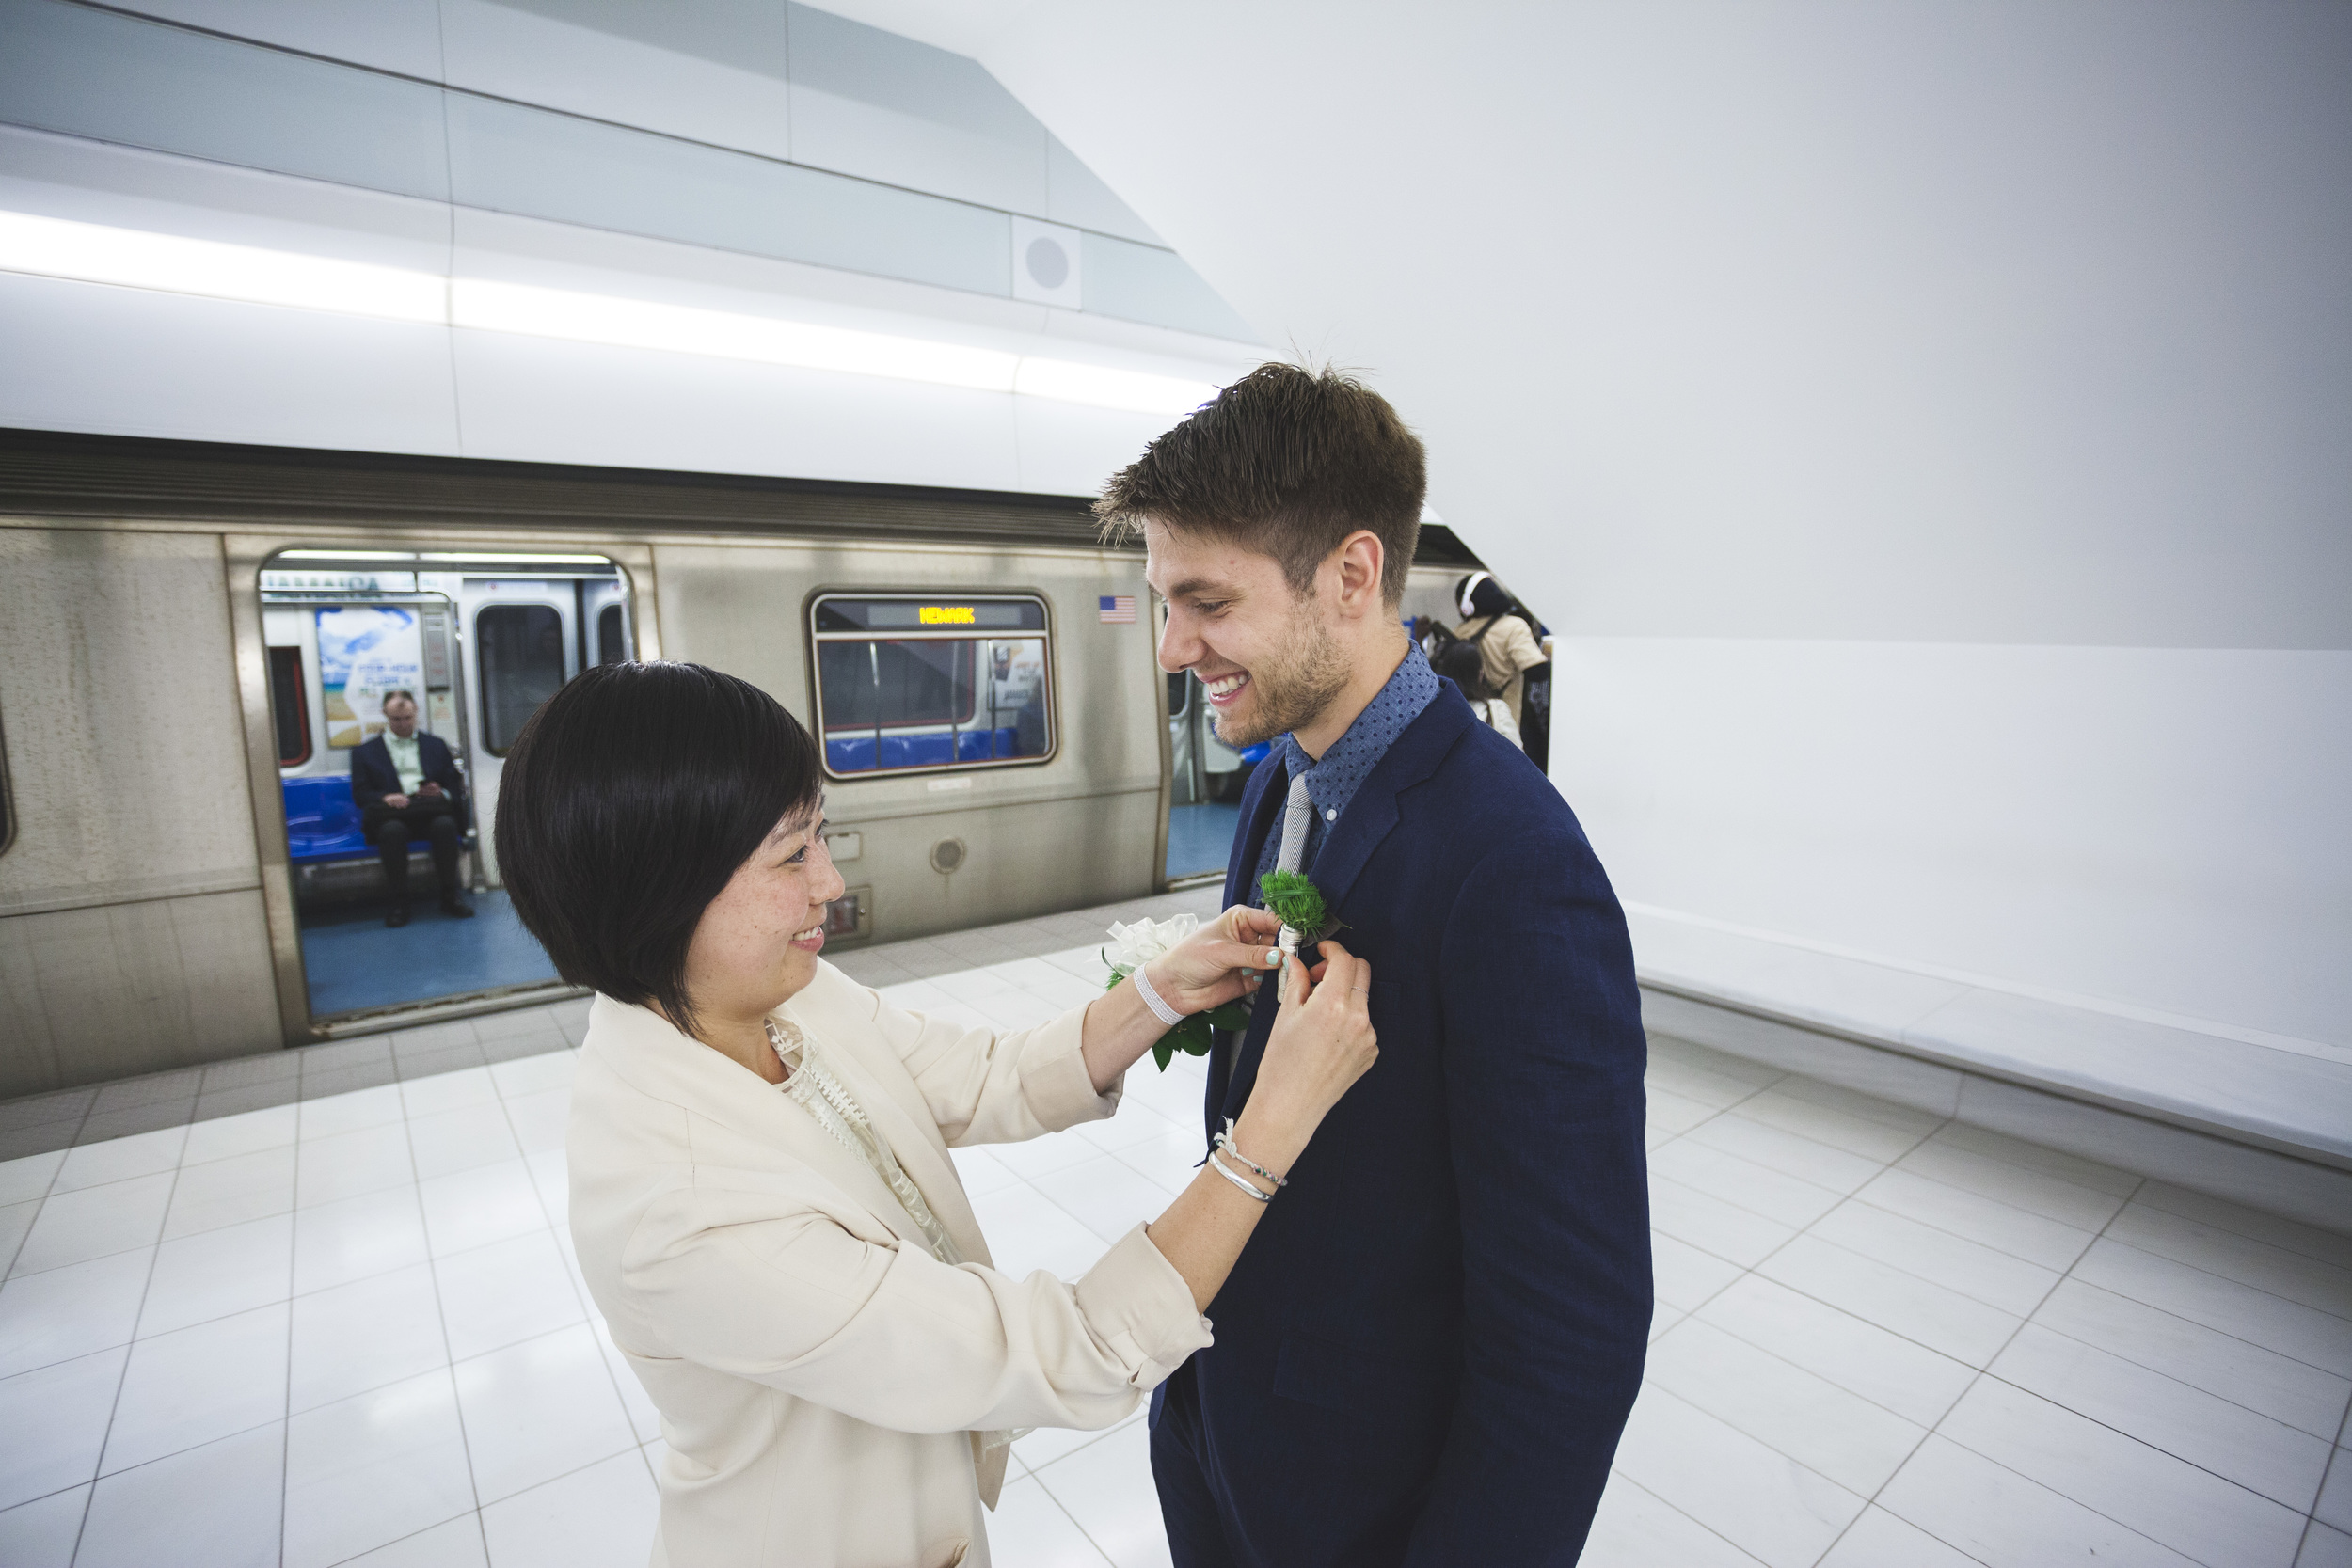 Getting the boutonnière ready in the train station!